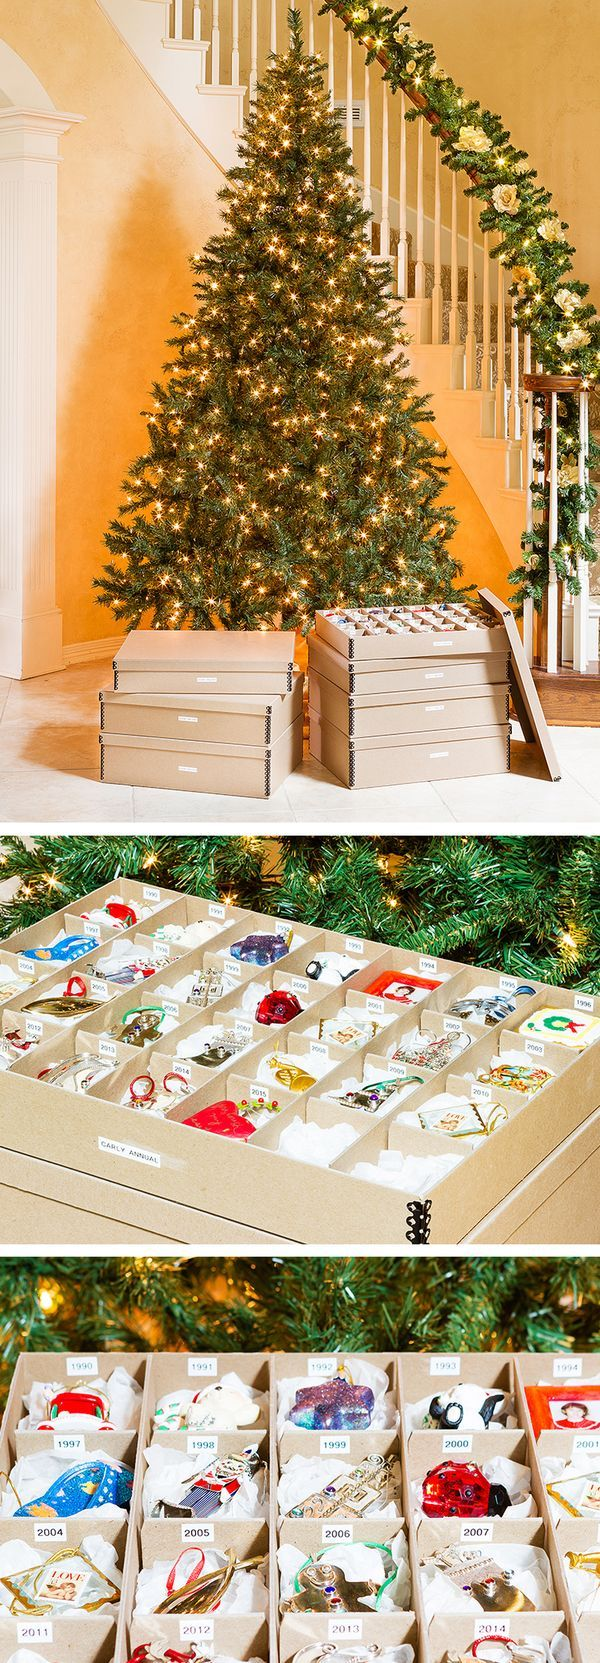 A sweet ornament tradition receives a storage upgrade. - Best 20+ Christmas Ornament Storage Ideas On Pinterest Ornament